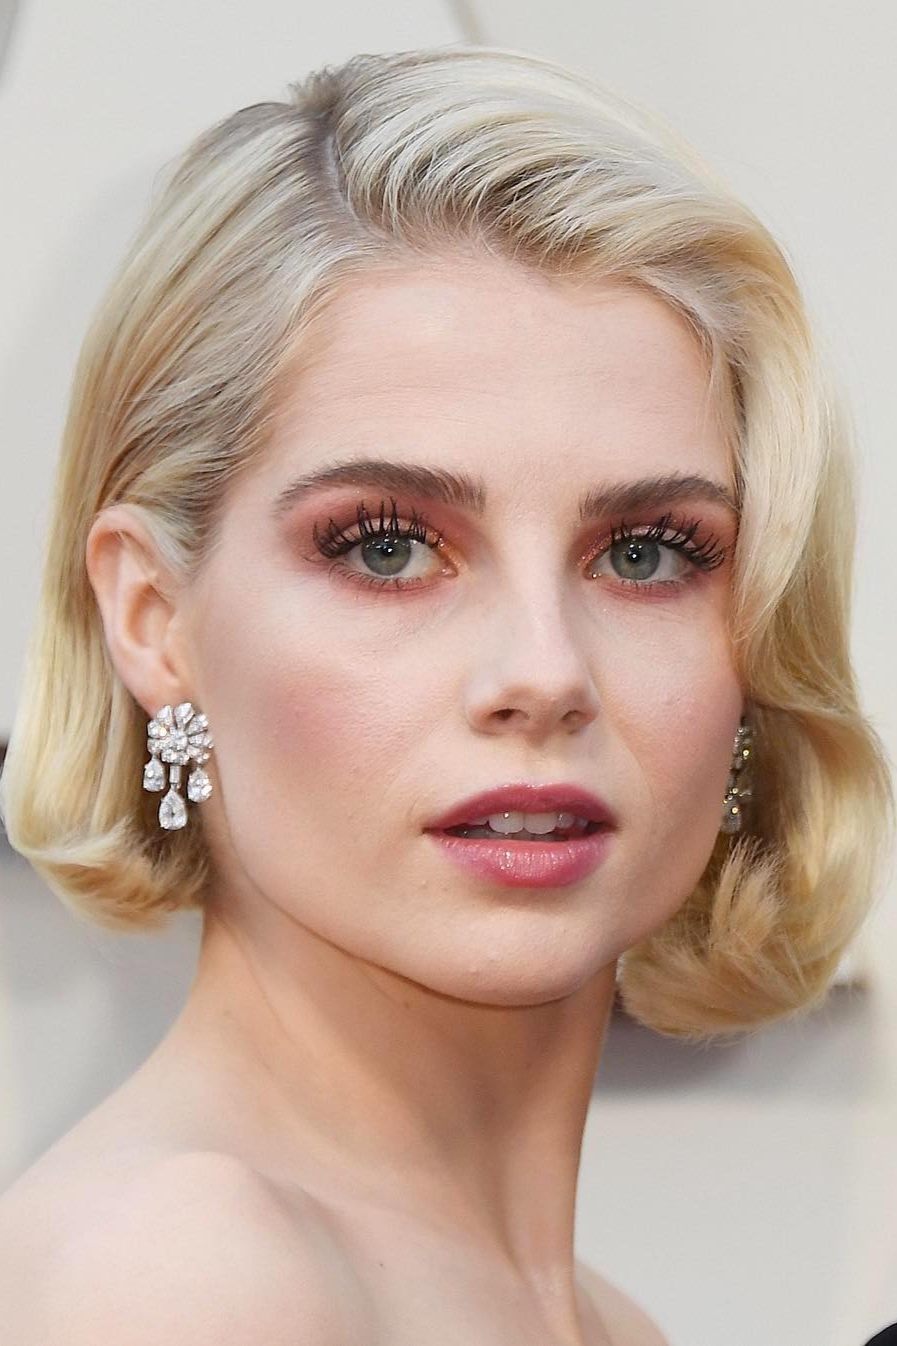 Lucy Boynton's Icy Blonde Elegance - The Grace Kelly comparisons are inevitable, but hairstylist Jenny Cho imparted just enough oomph (via Unite Hair Boosta) to keep Boynton's look from skewing too retro. Combined with makeup artist Jo Baker's tone-on-tone pinks, those platinum strands looked fresh and frisky. In other words, the Bohemian Rhapsody star really rocked it.